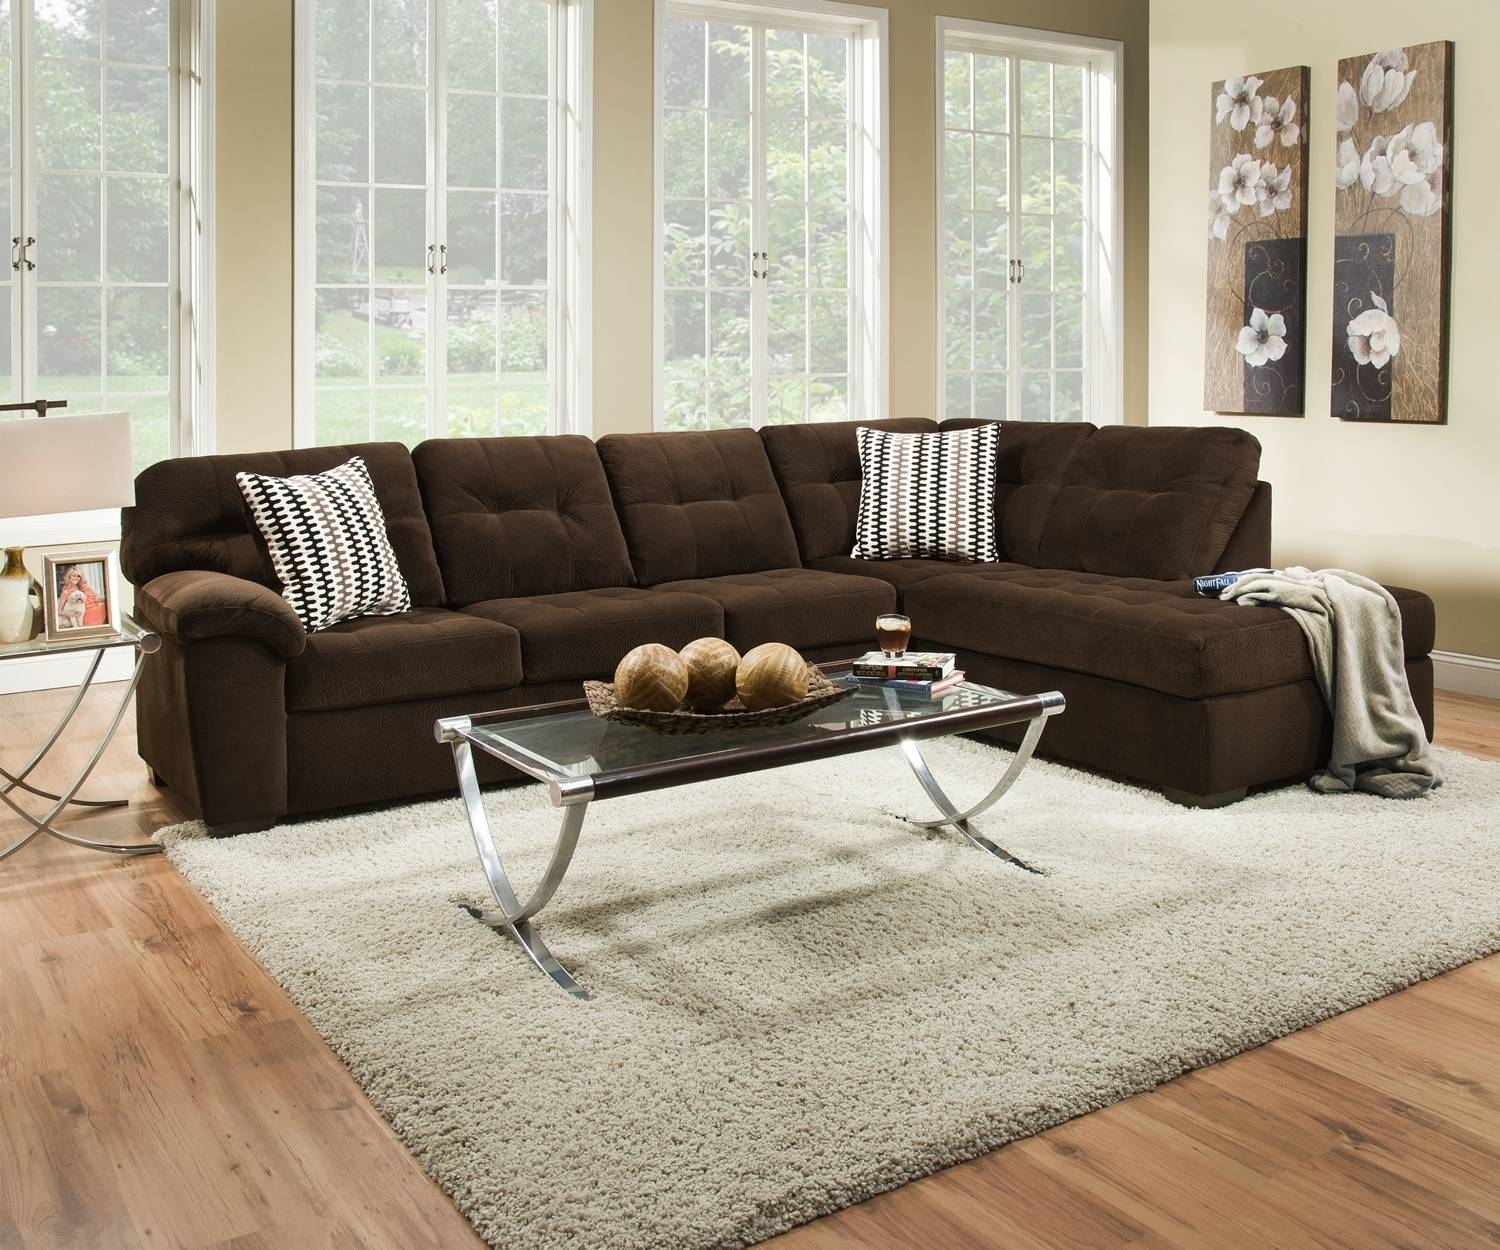 Bernie Godiva Sectionalsimmons with regard to Simmons Sectional Sofas (Image 2 of 30)